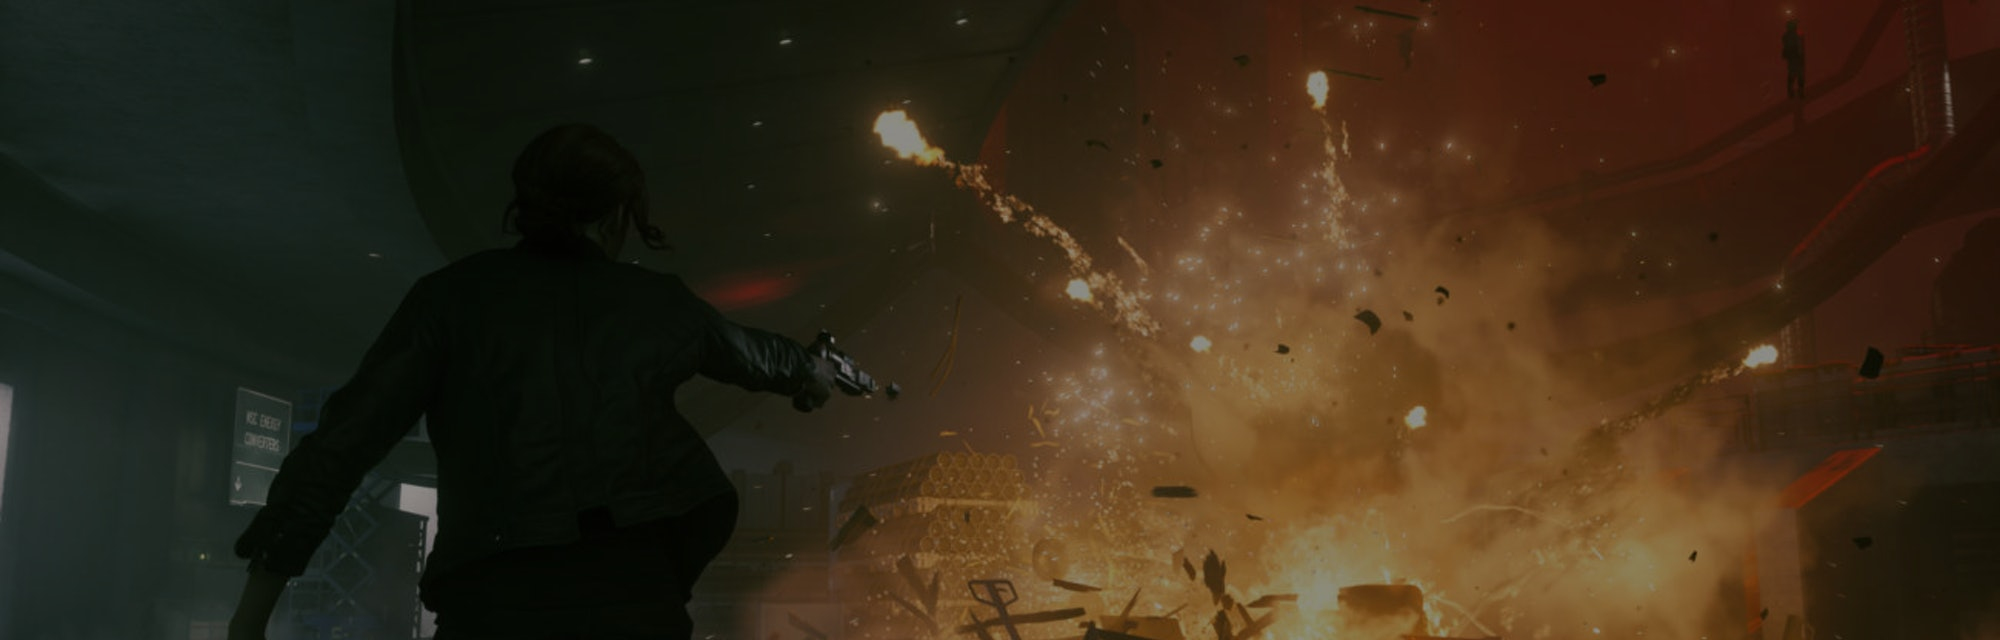 A screenshot from the game Control in which the protagonist, armed with a gun, is engaged in combat.